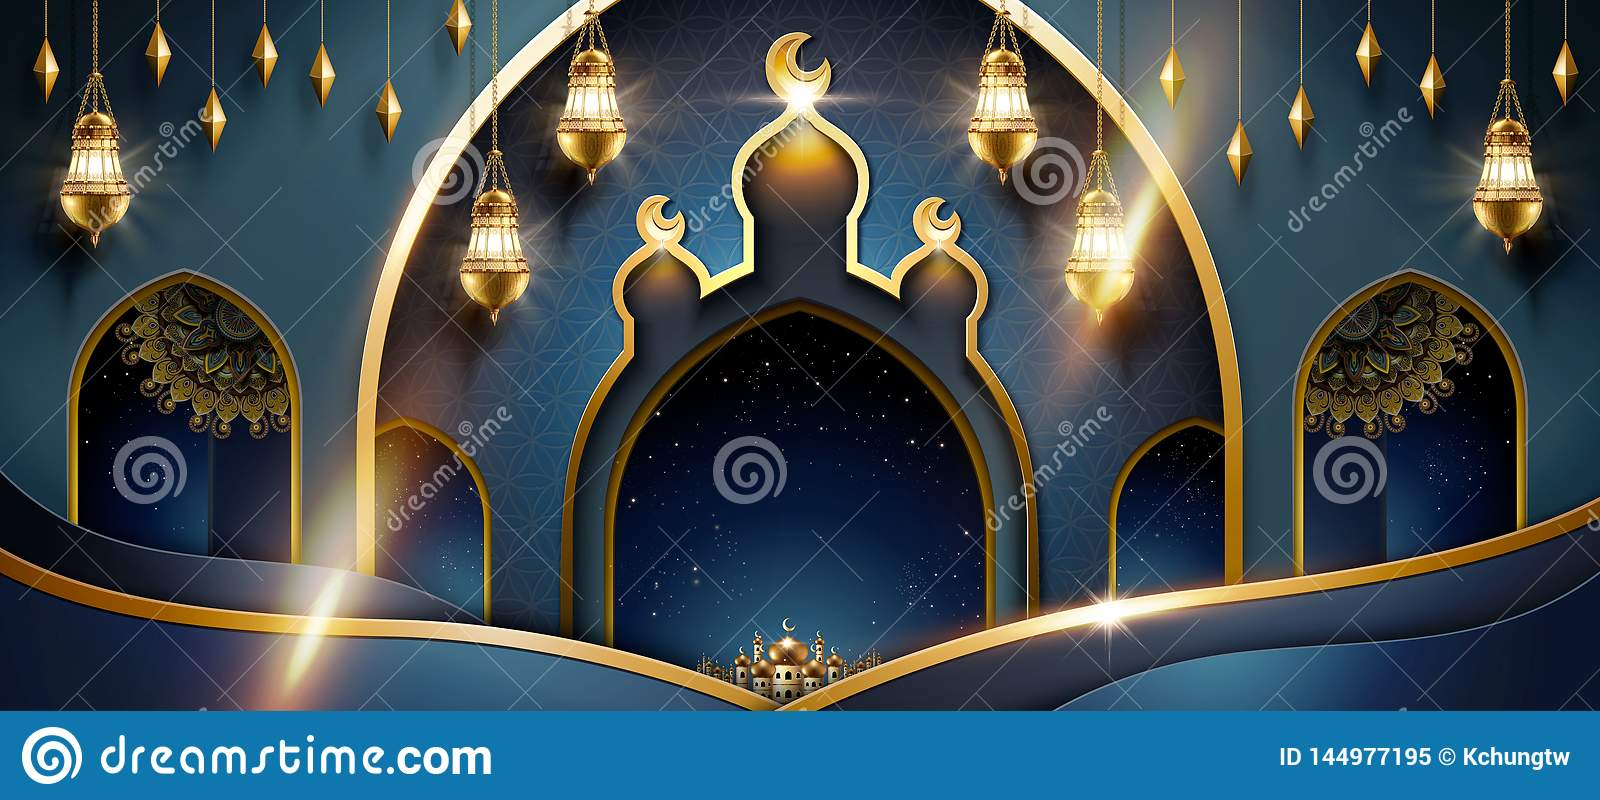 Islamic Art Background Stock Vector. Illustration Of Color - 144977195